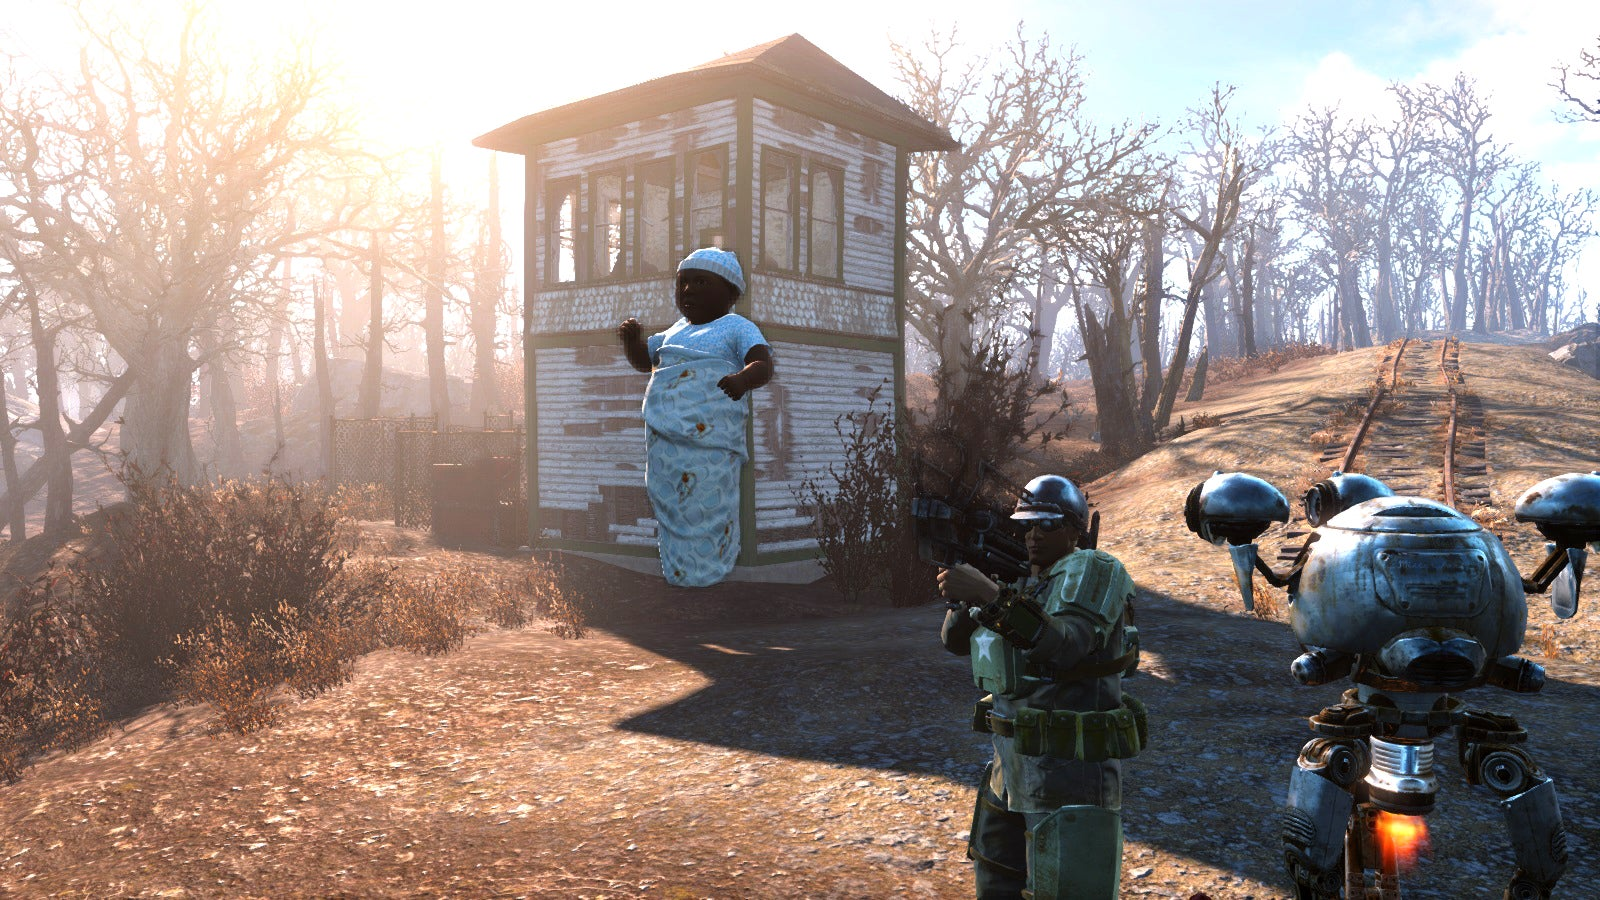 Fallout 4 Mod Replaces Mini-Nukes With Your Baby